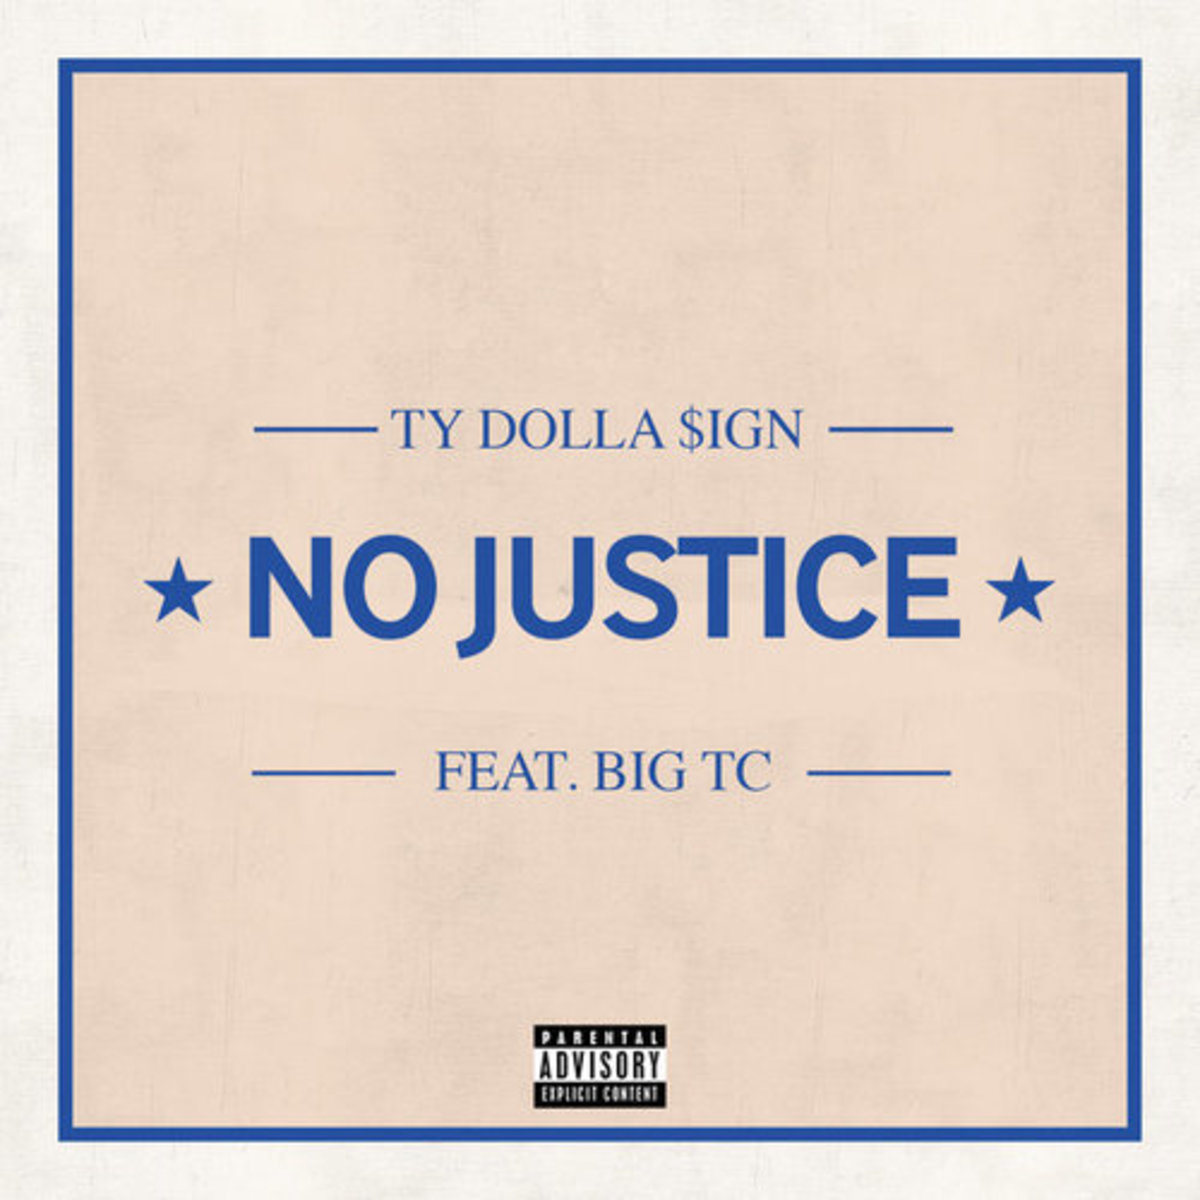 ty-dolla-sign-no-justice.jpeg